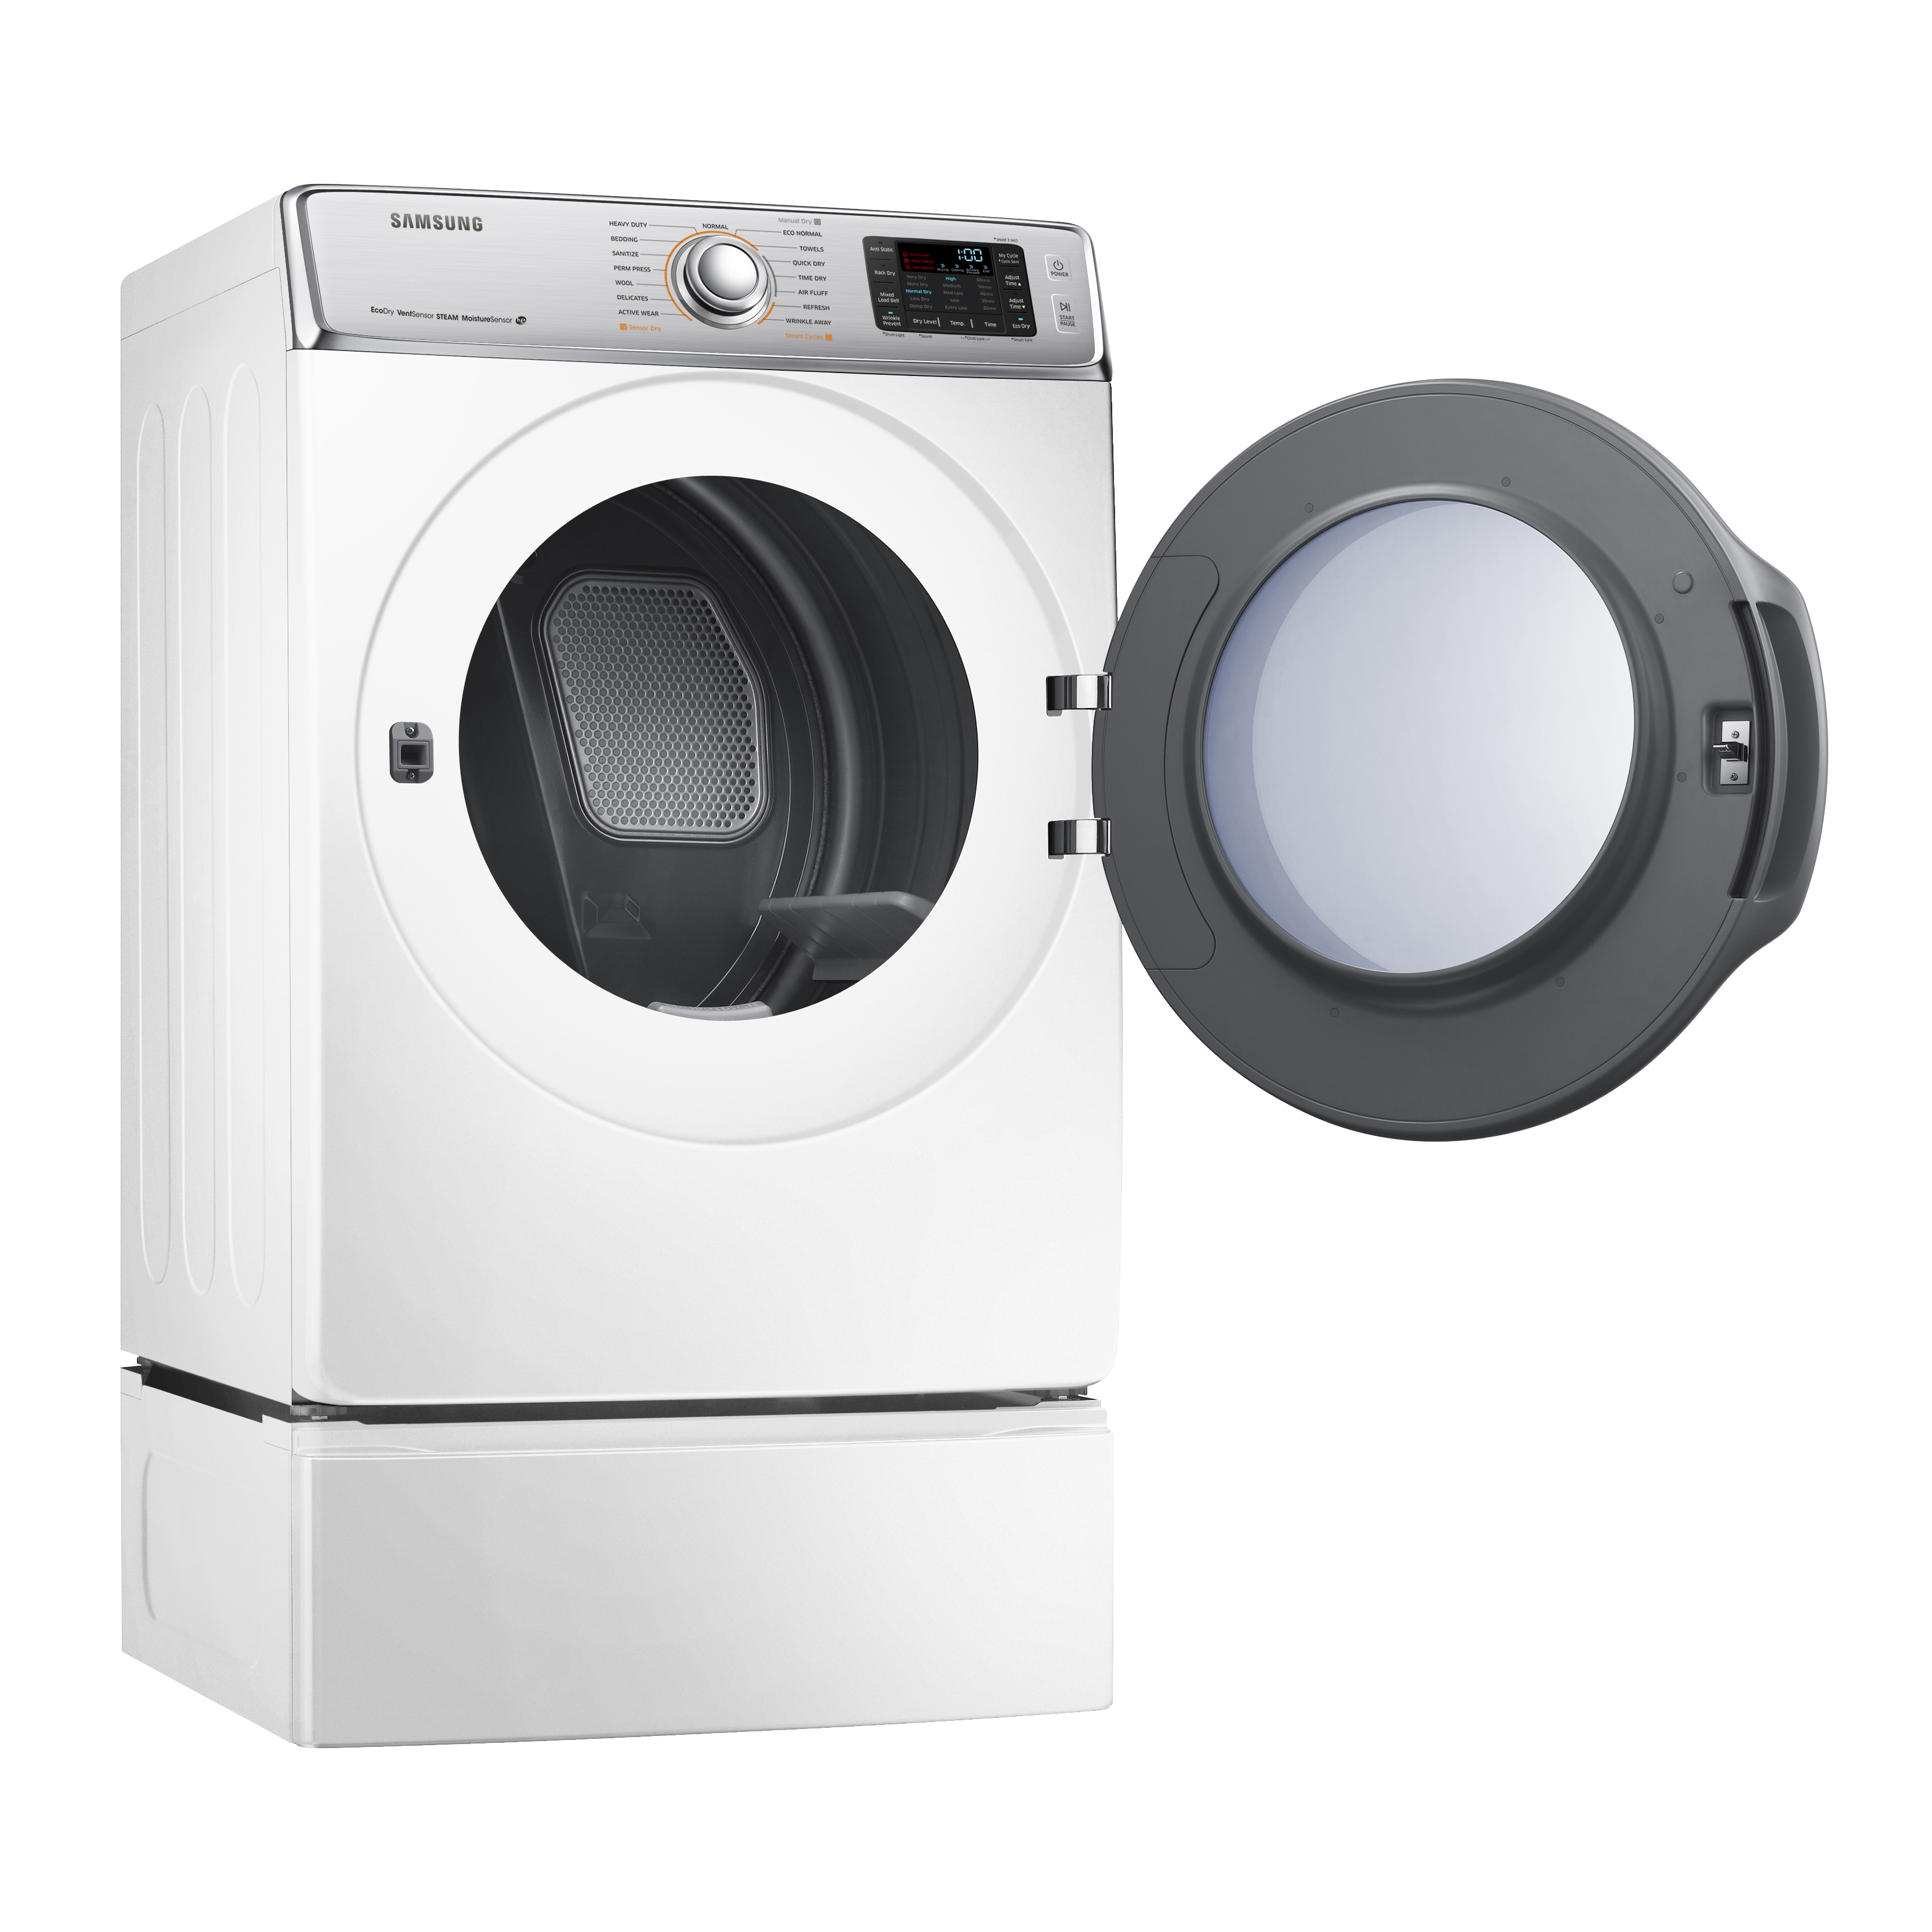 Samsung 9.5 cu. ft. Front-Load Electric Dryer - White